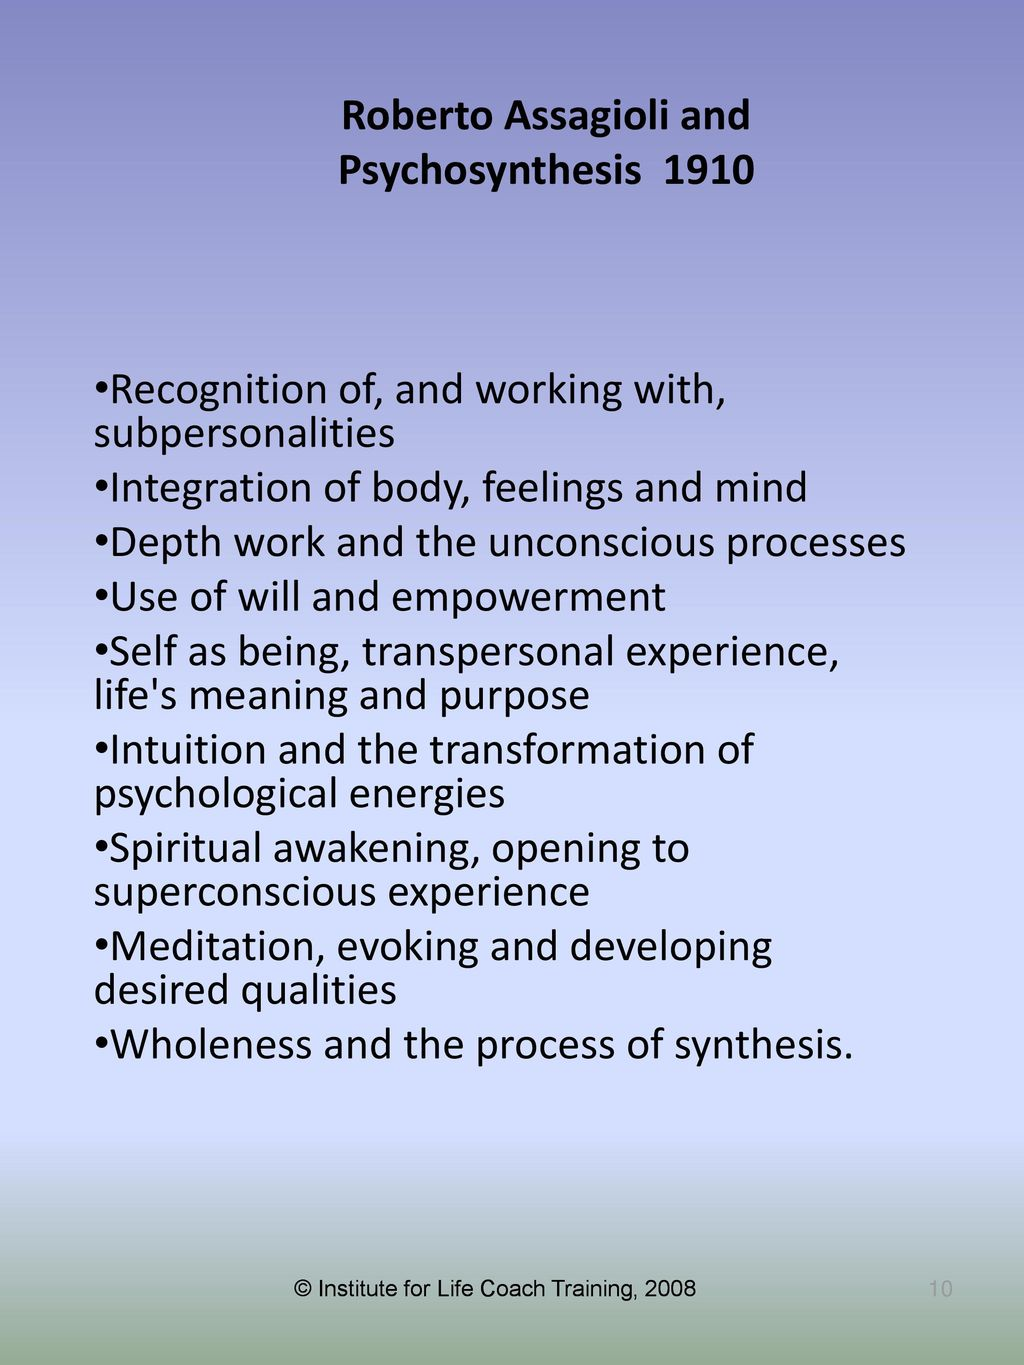 Transpersonal Coaching: Integrating Brain, Body, and Being